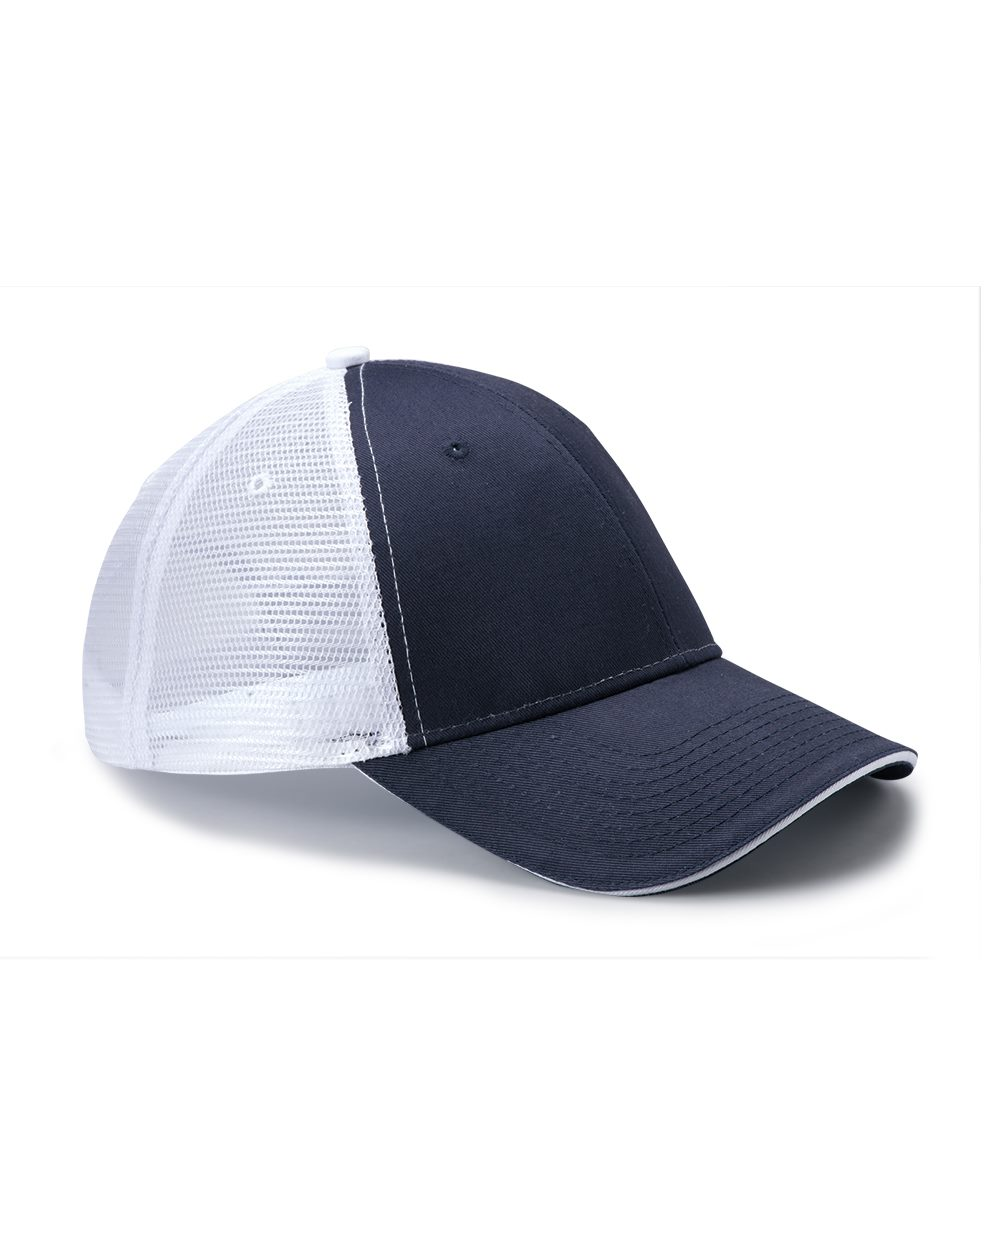 Valucap Sandwich Trucker Cap - S102